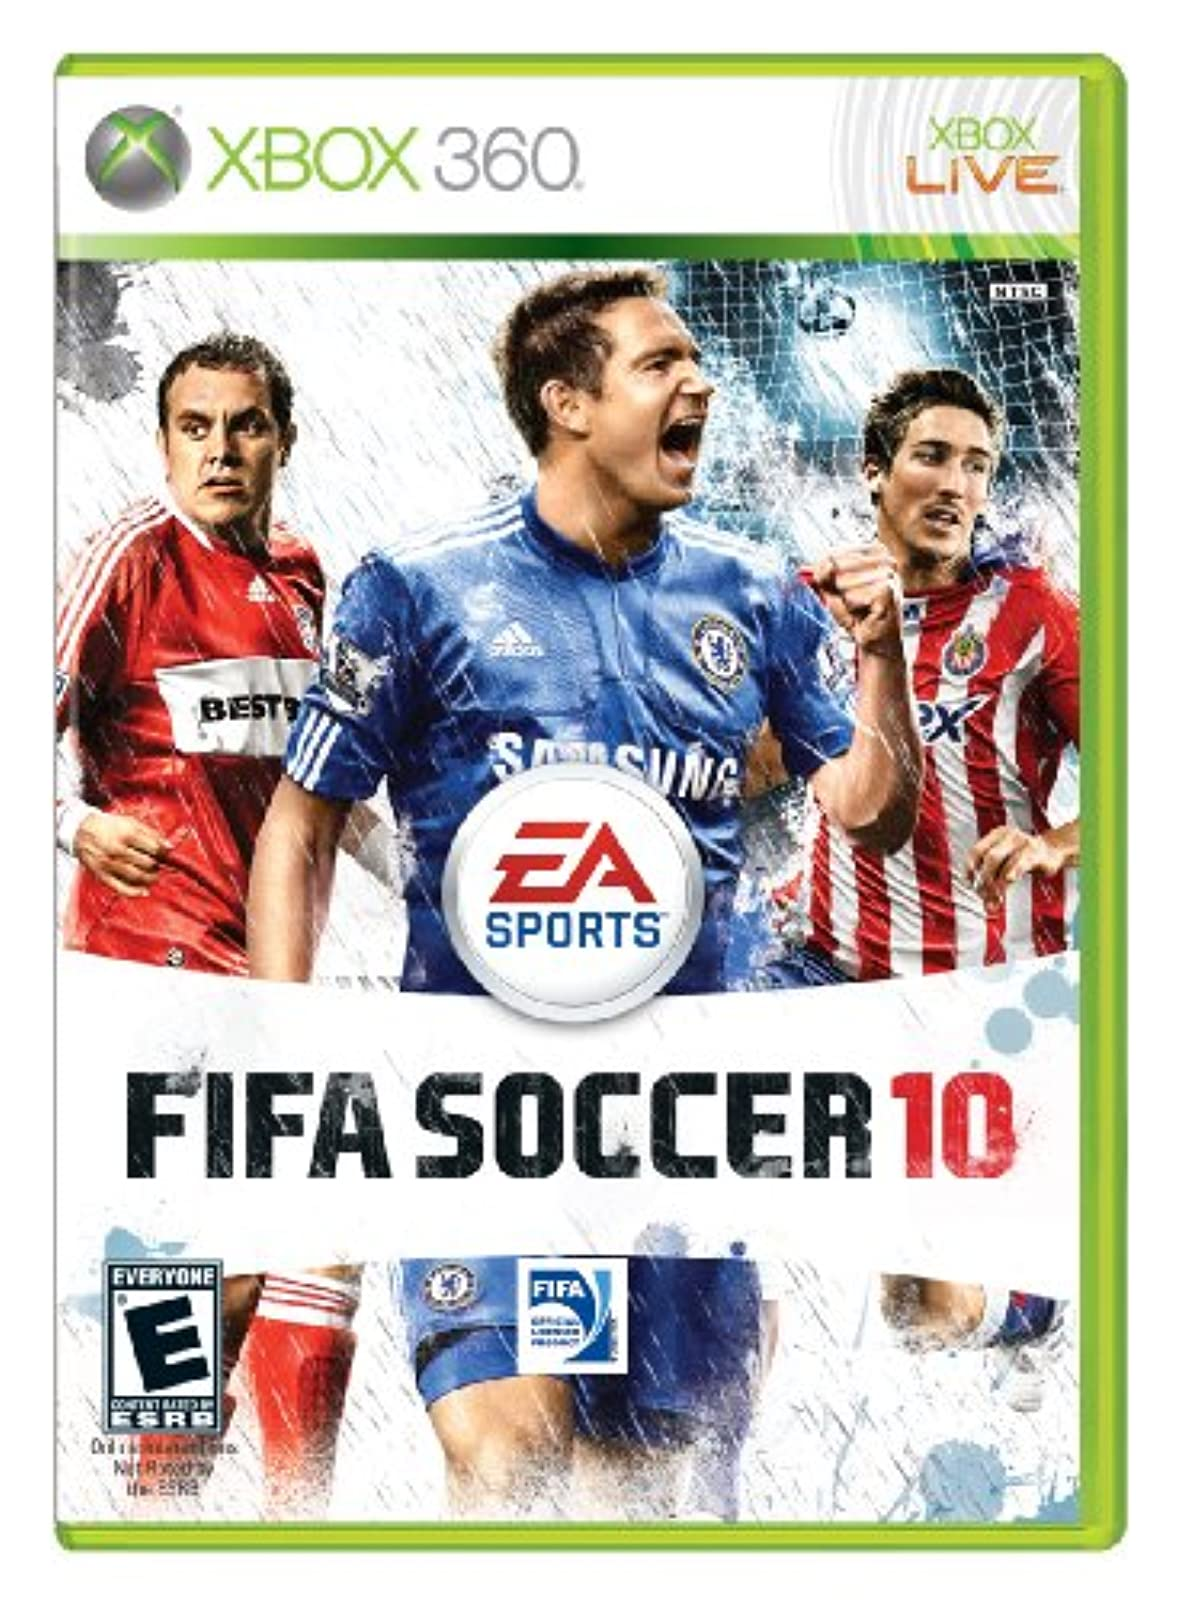 FIFA Soccer 10 For Xbox 360